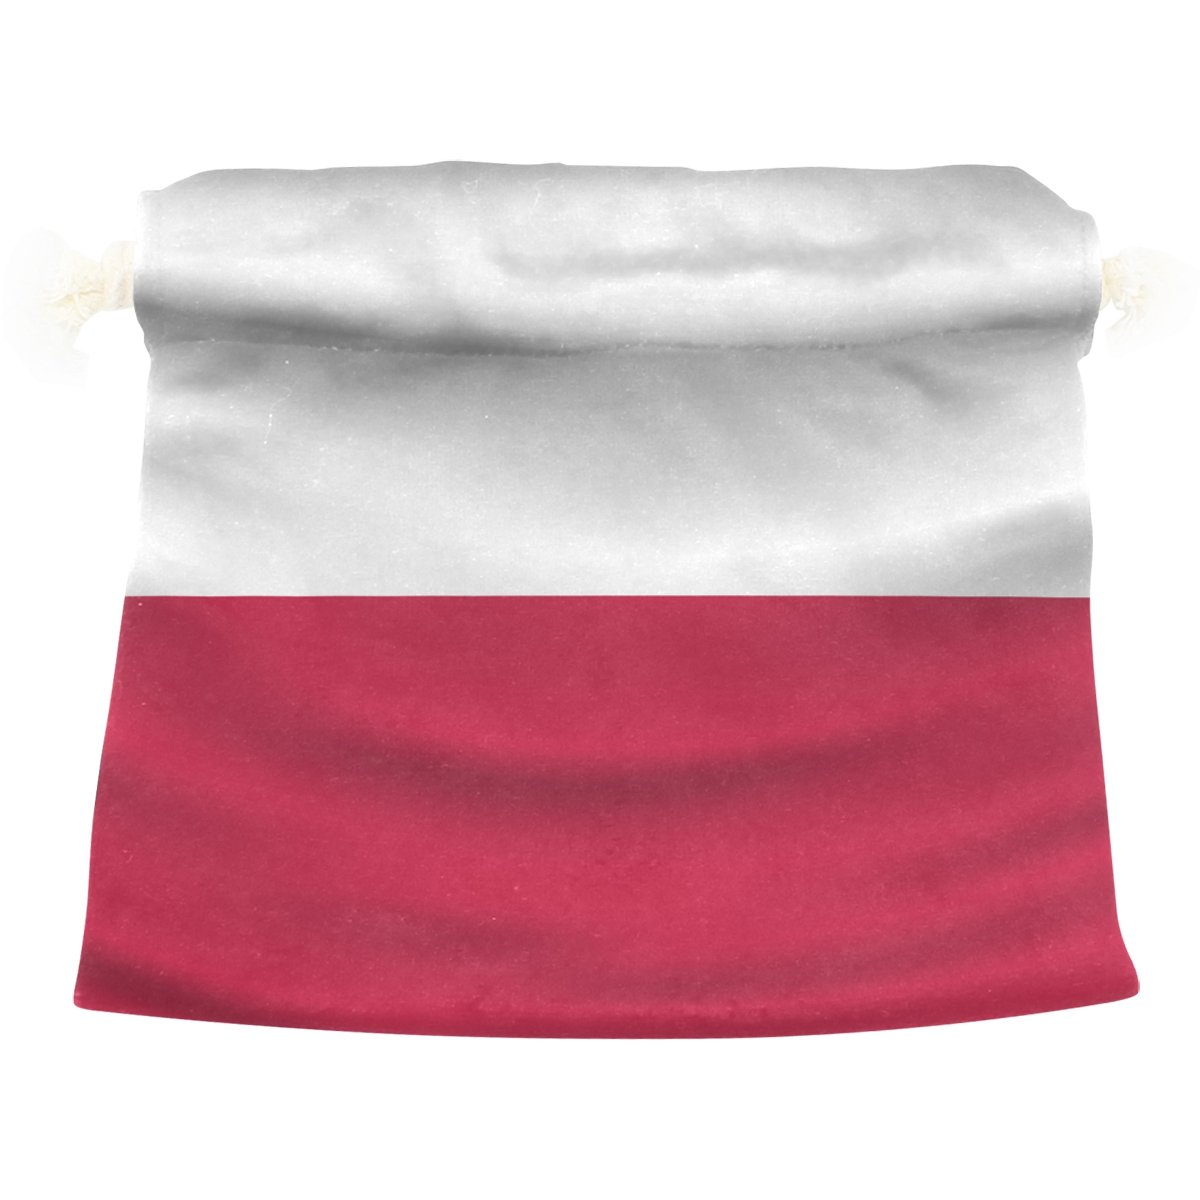 super3Dprinted Poland Flag Velvet Drawstring Gift Bag Wrap Present Pouch Favor for Party Game Wedding, Multiple Sizes Available